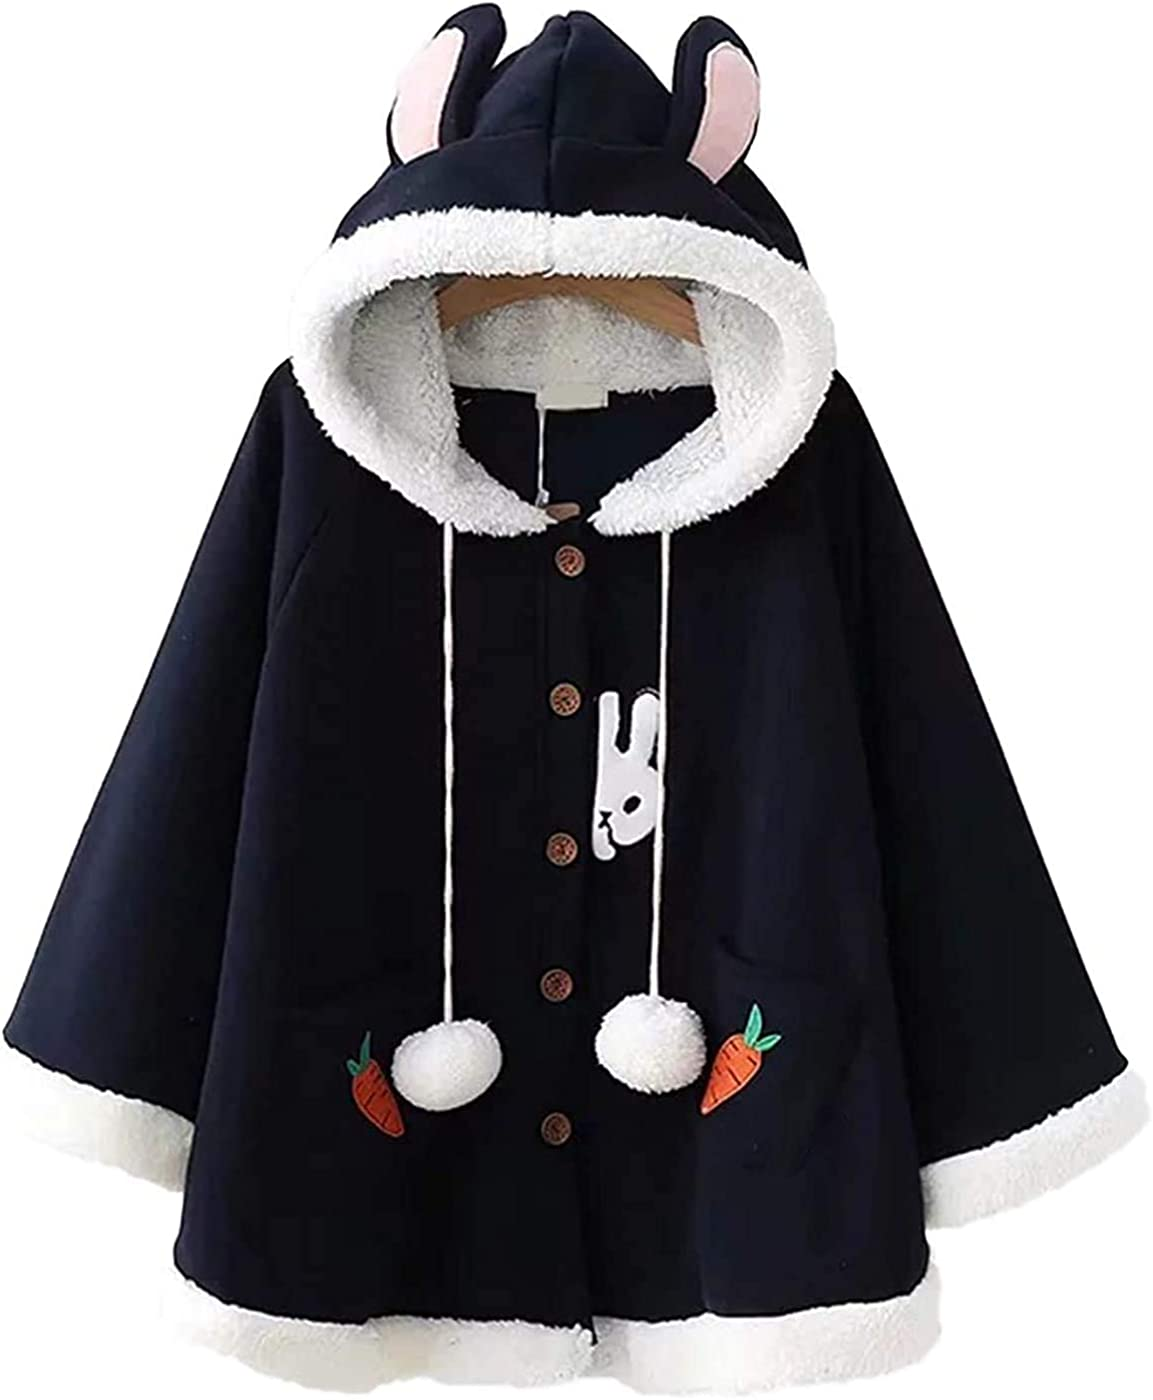 Girl Cute Hooded Cloak Soft and Comfortable Cotton Rabbit Embroidery Vertical Ear Cloak Coat